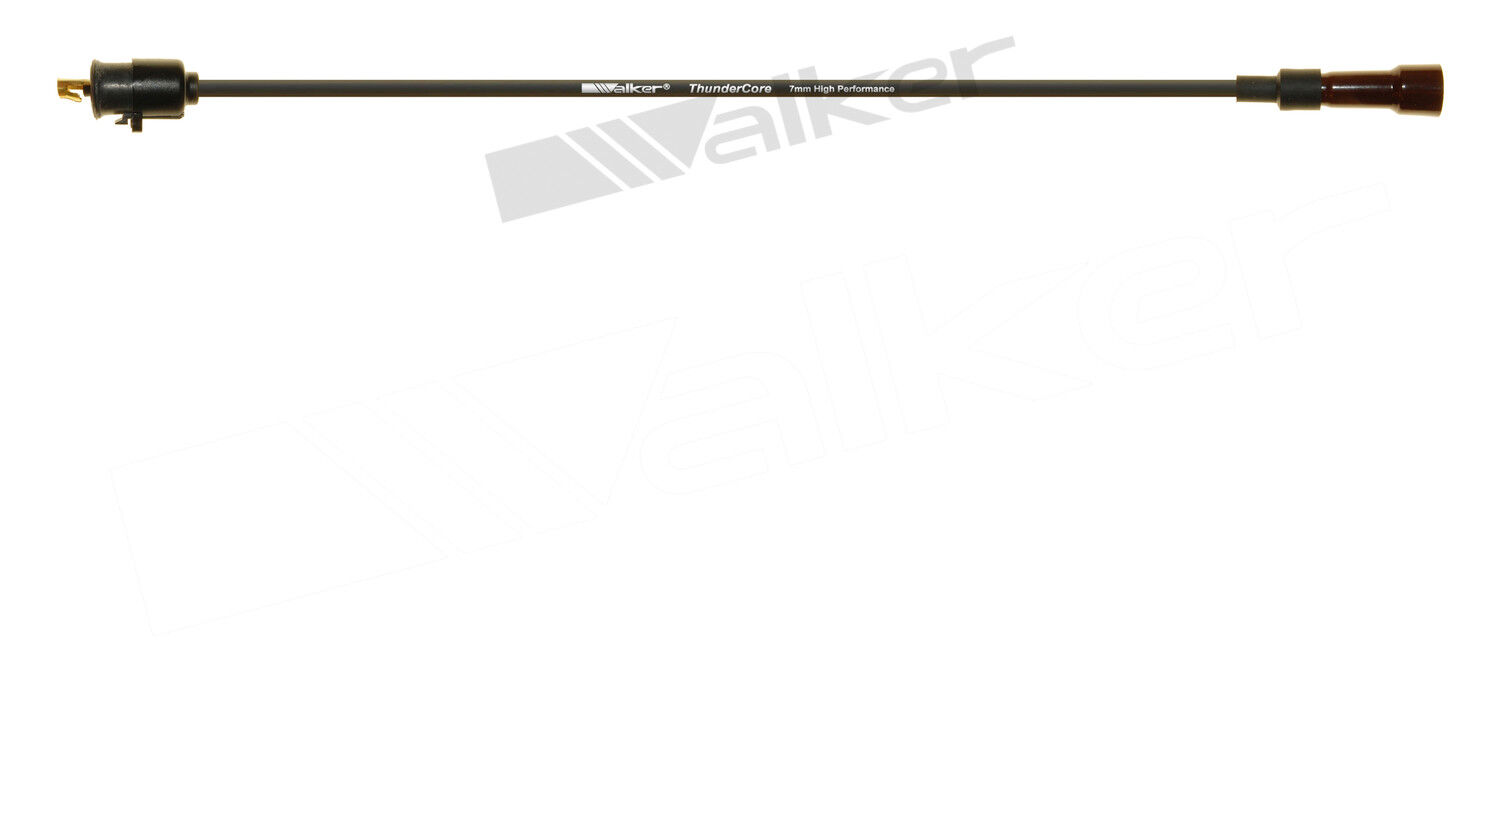 Spark Plug Wire Set-ThunderCore Walker Products 910-1175   eBay